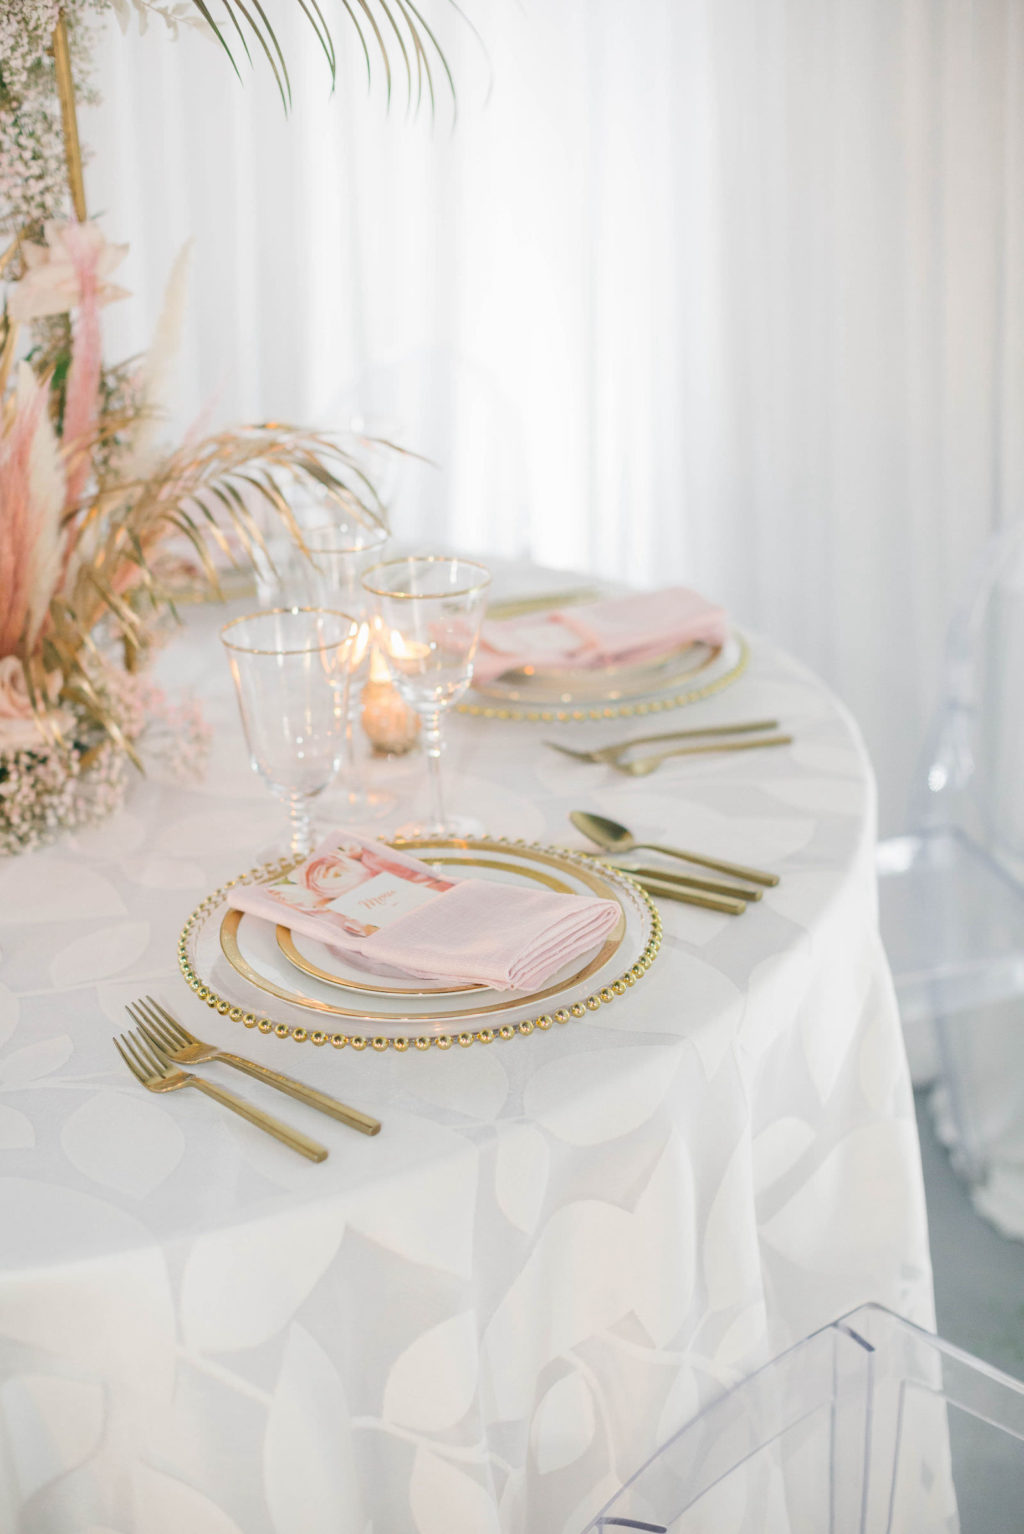 Clearwater Beach Wedding Venue Bellwether Beach Resort Styled With Love Something Bleu by McKenna Bleu | Instagram Wedding Designer Inspiration | Reception Table Linen with Gold Beaded Edge Charger and Gold Flatware with Blush Pink Napkin and Floral Menu Card and Gold Rim Glassware